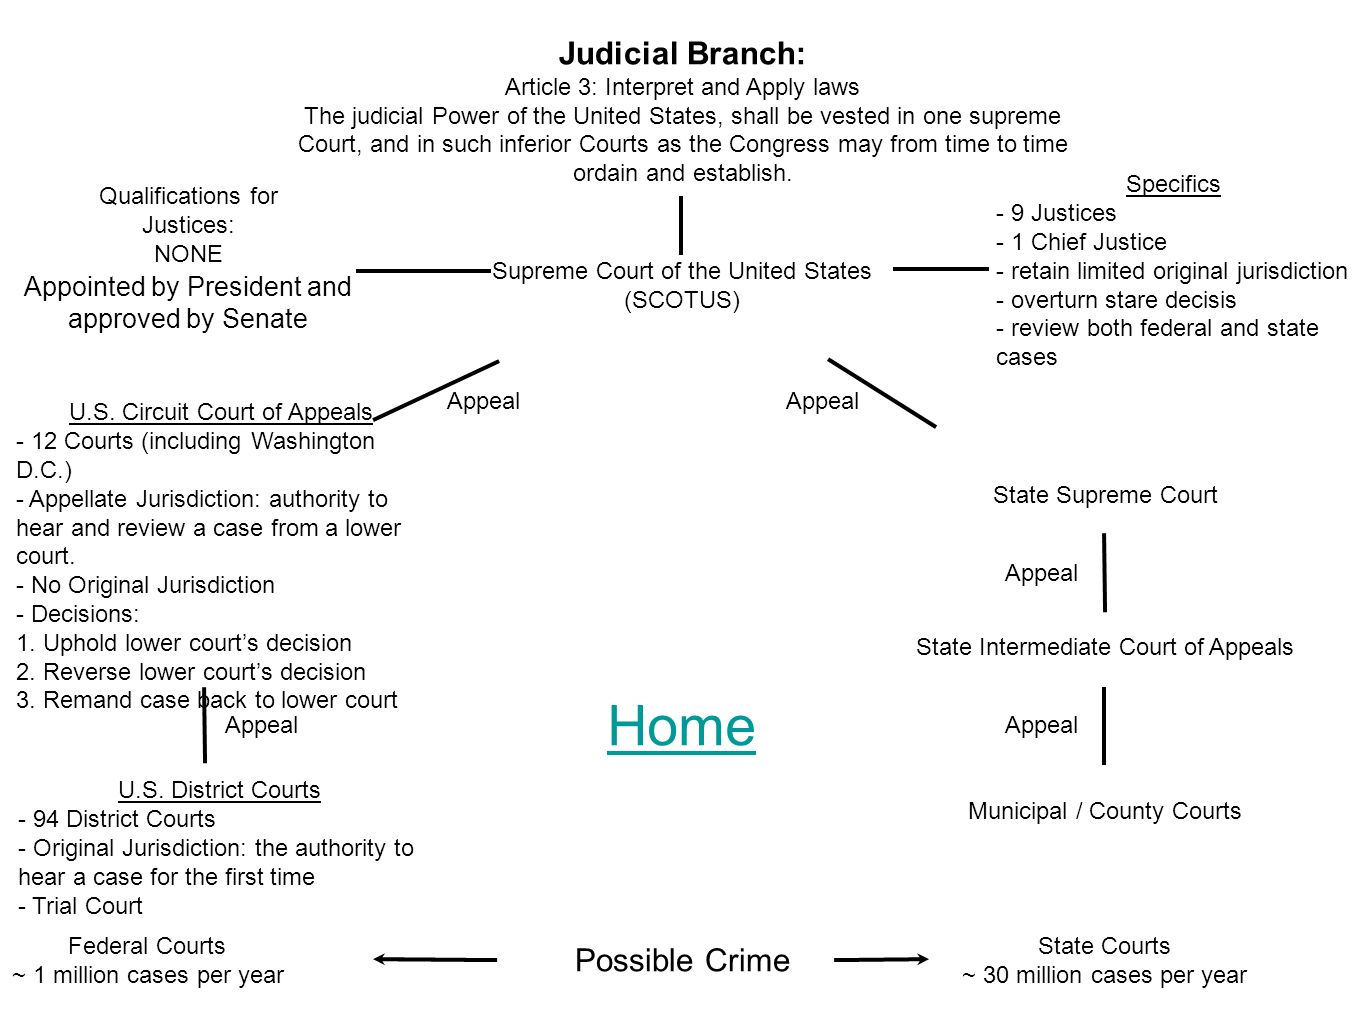 Home Judicial Branch: Possible Crime